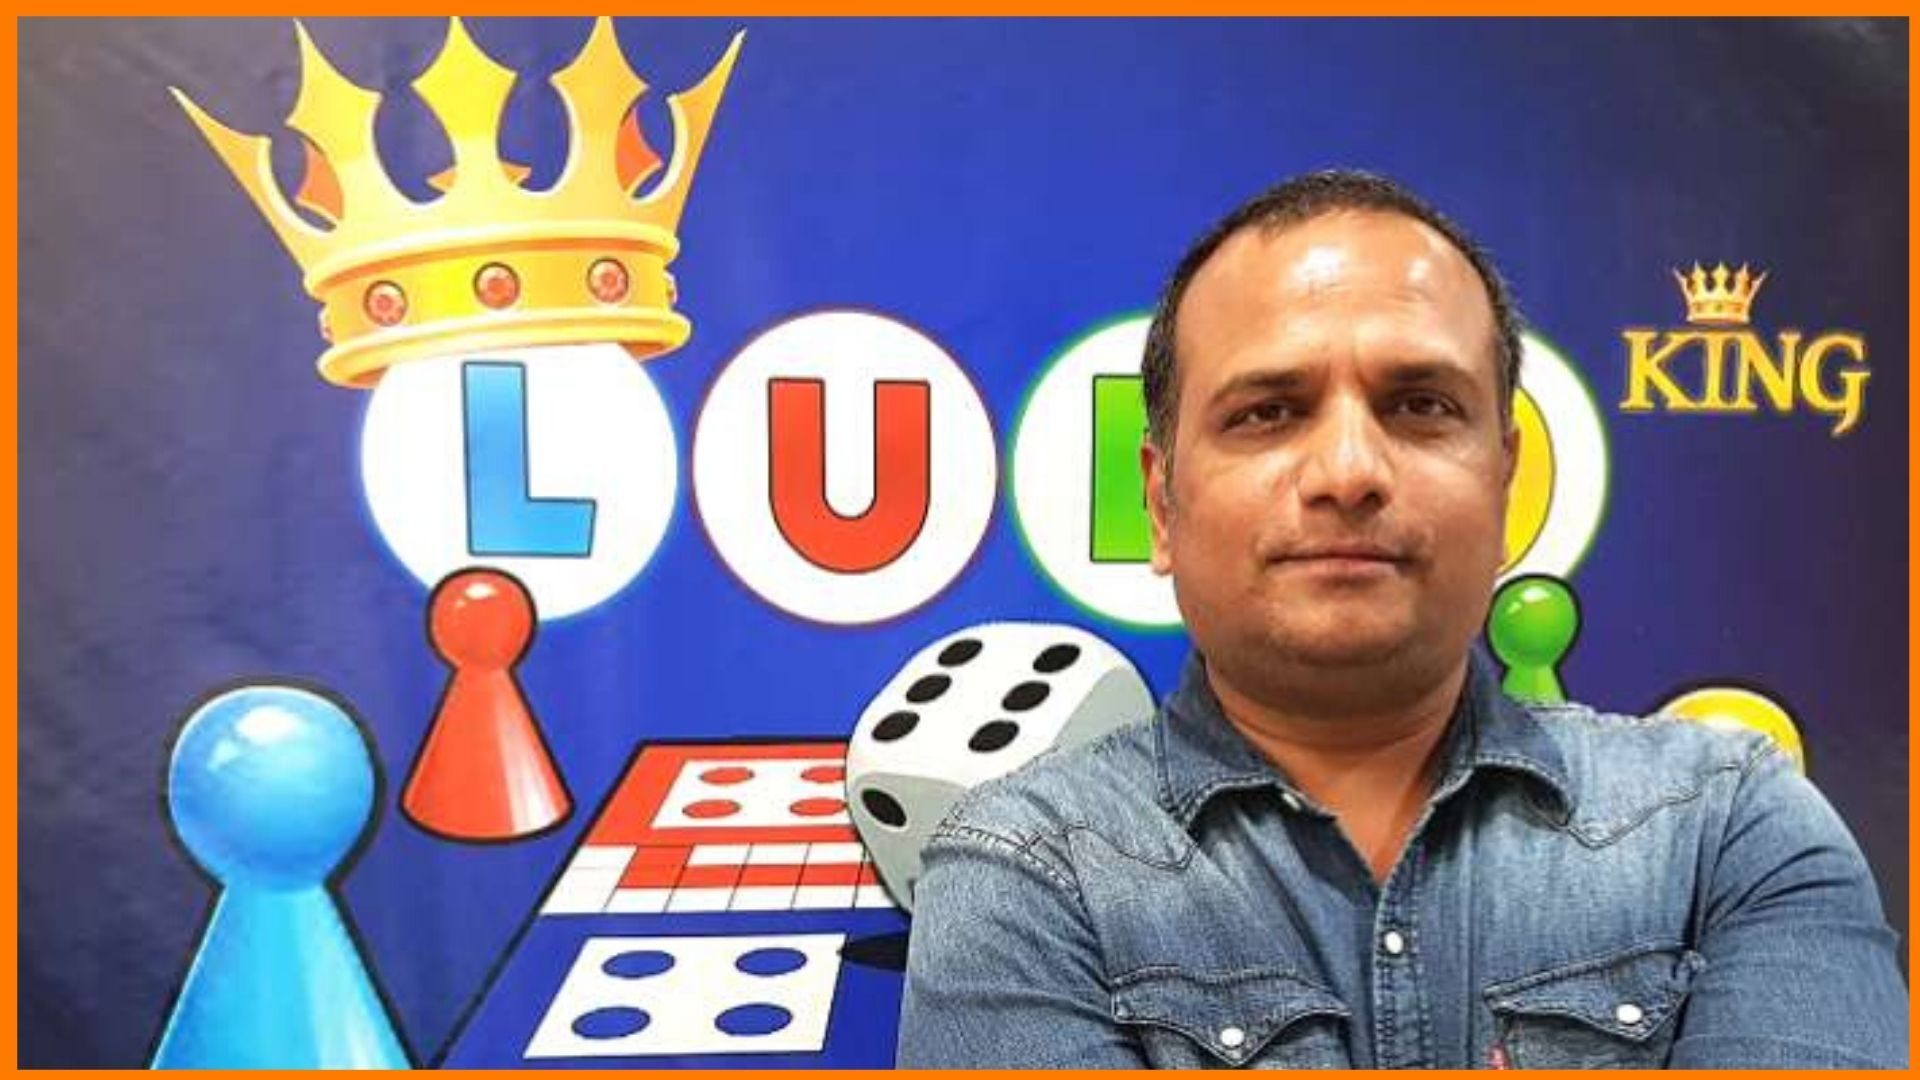 Vikash Jaiswal is Ludo King Owner